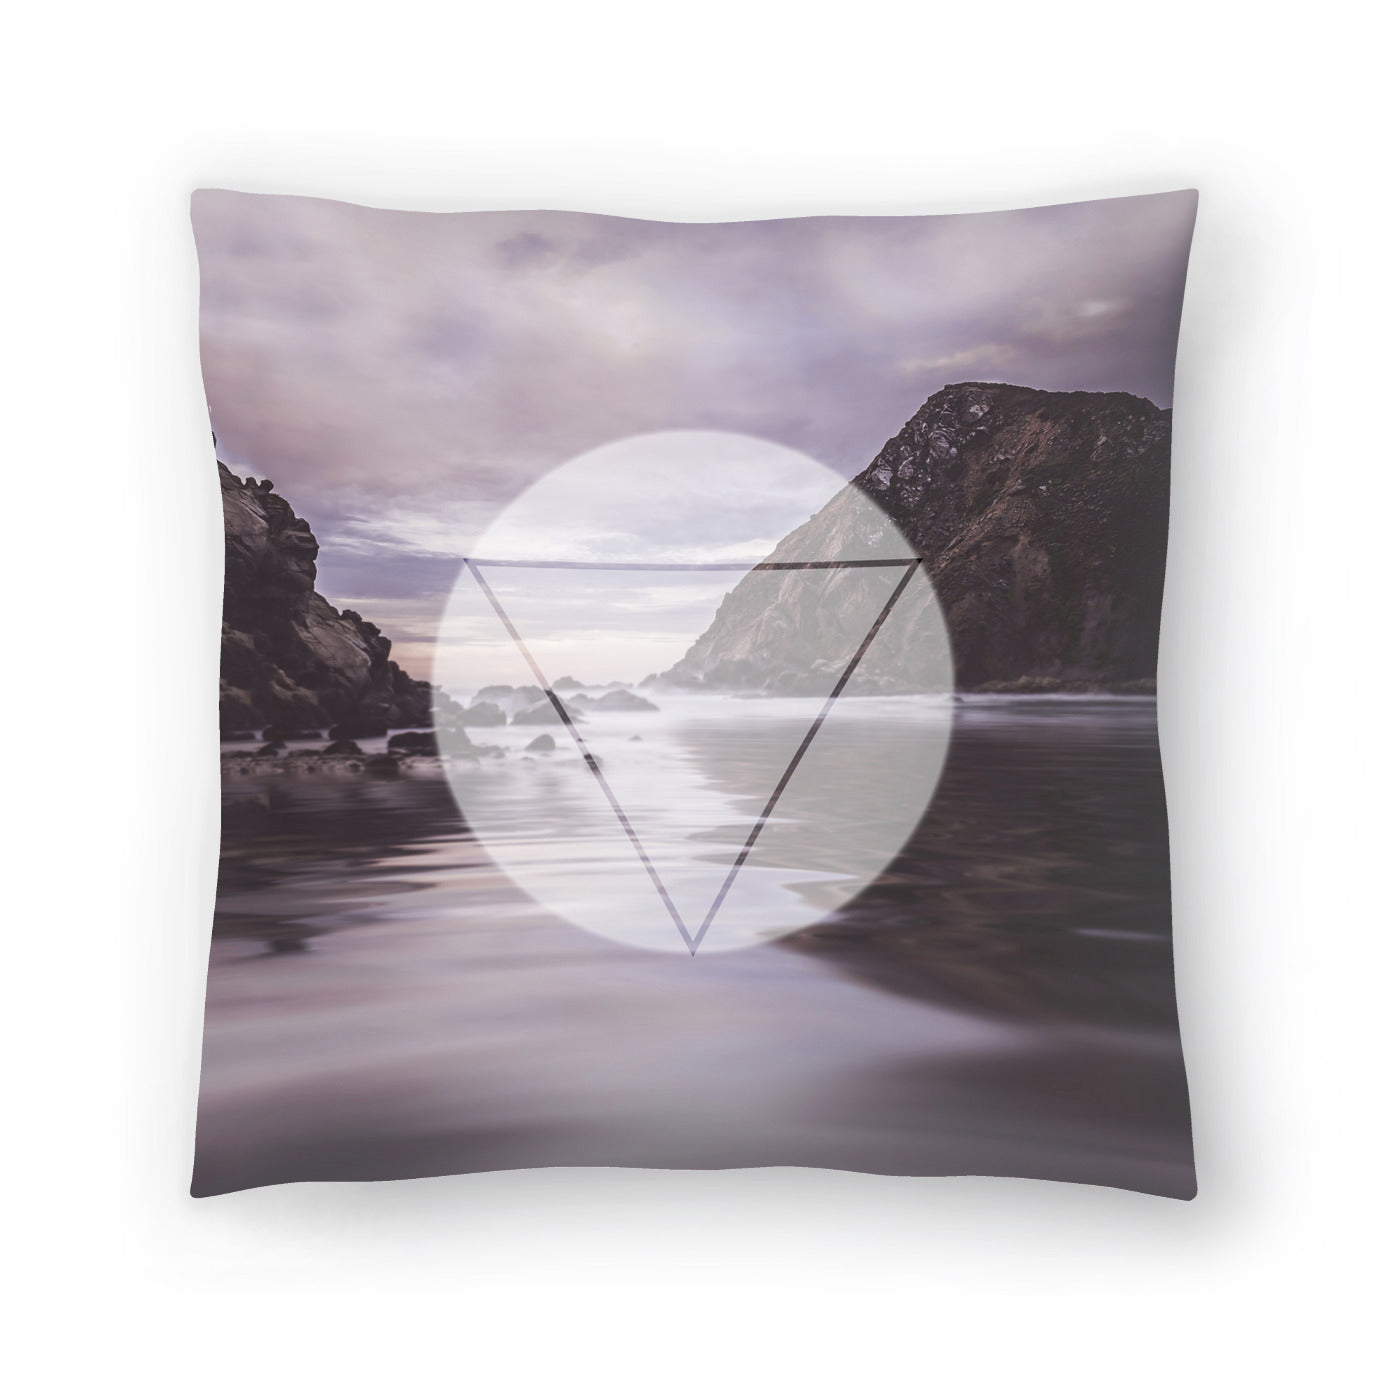 Landscape Surreal Geometry by Lebens Art Decorative Pillow - Decorative Pillow - Americanflat